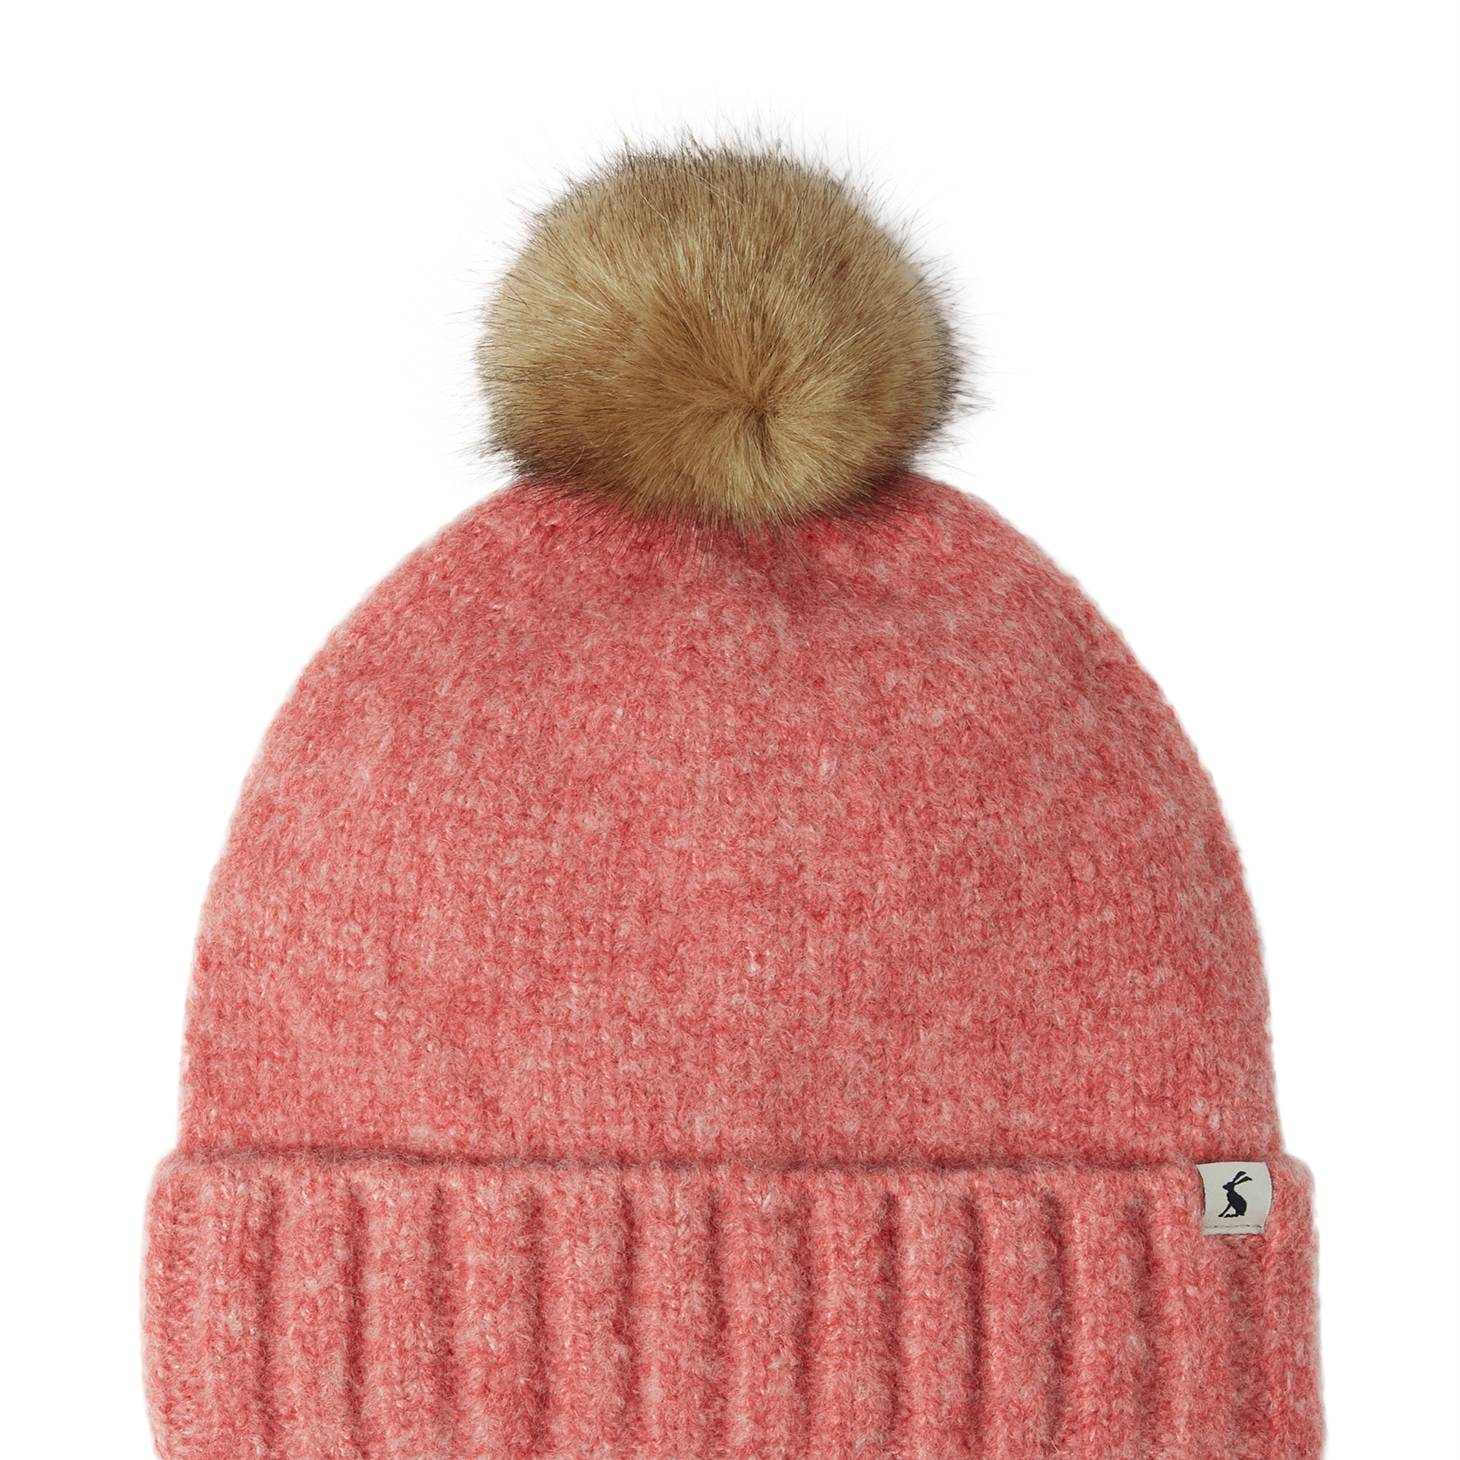 Joules Ladies Snugwell Hat Heavyweight Boucle Hat - Pink Blush